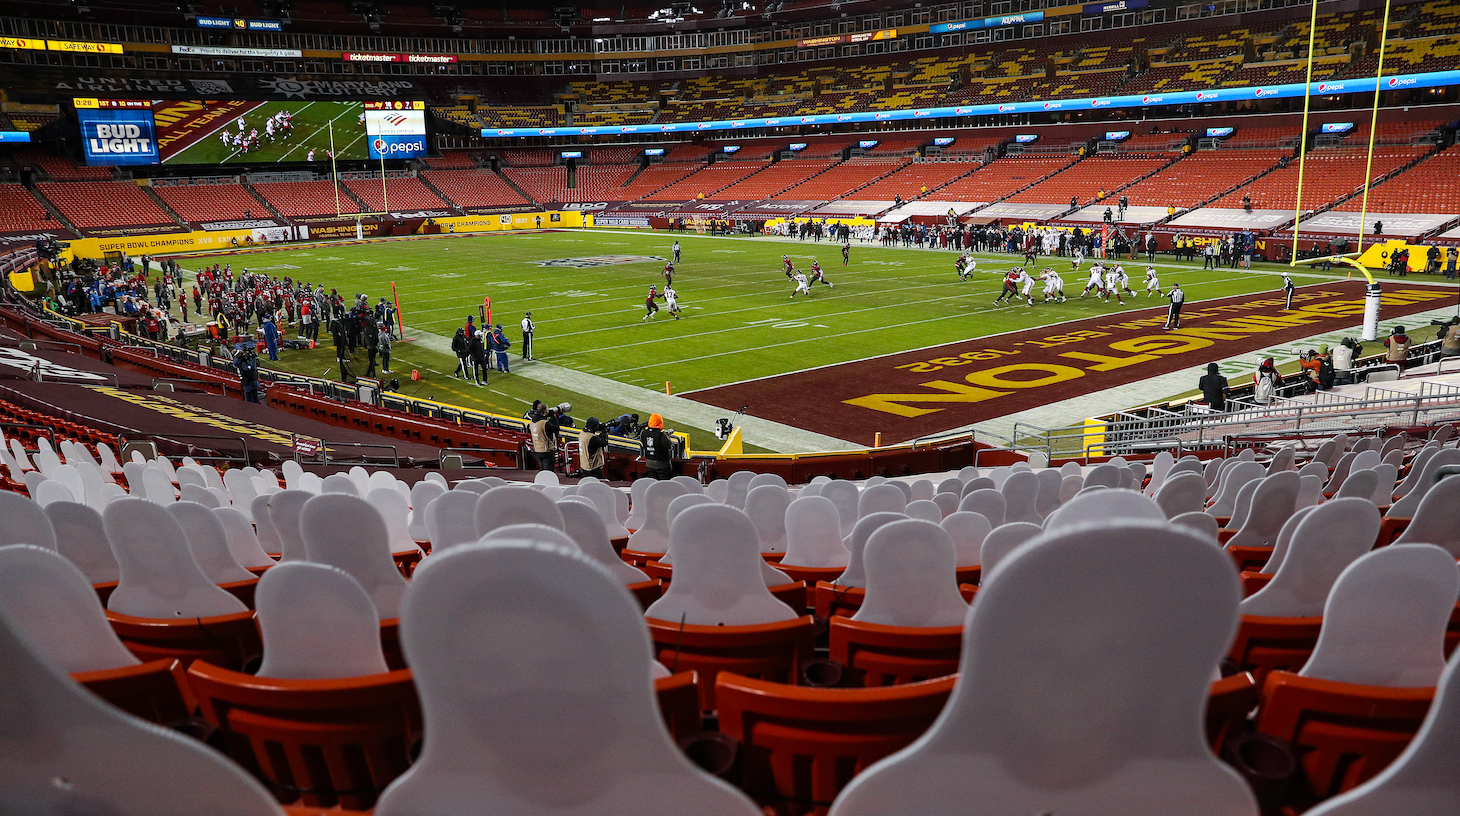 LANDOVER, MARYLAND - JANUARY 09: Cardboard cutouts are seen in a general view as the Tampa Bay Buccaneers play the Washington Football Team during the second quarter of the NFC Wild Card Playoff Round at FedExField on January 09, 2021 in Landover, Maryland. No fans were permitted due to health concerns over the Covid-19 pandemic. (Photo by Patrick Smith/Getty Images)